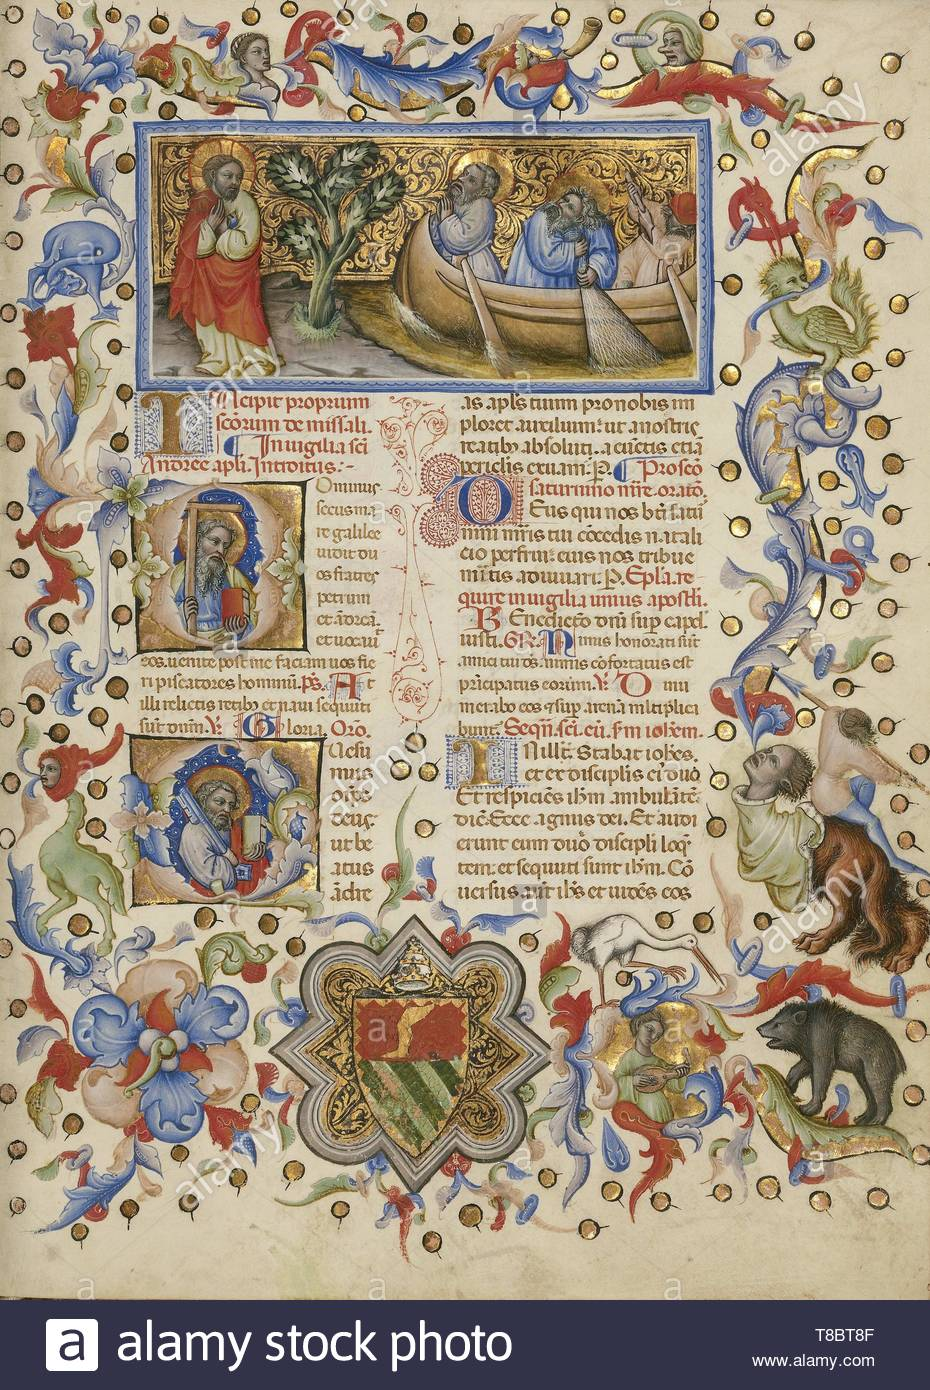 Master of the Brussels Initials, illuminator (Italian, active about 1389 - 1410)-Missal - Stock Image